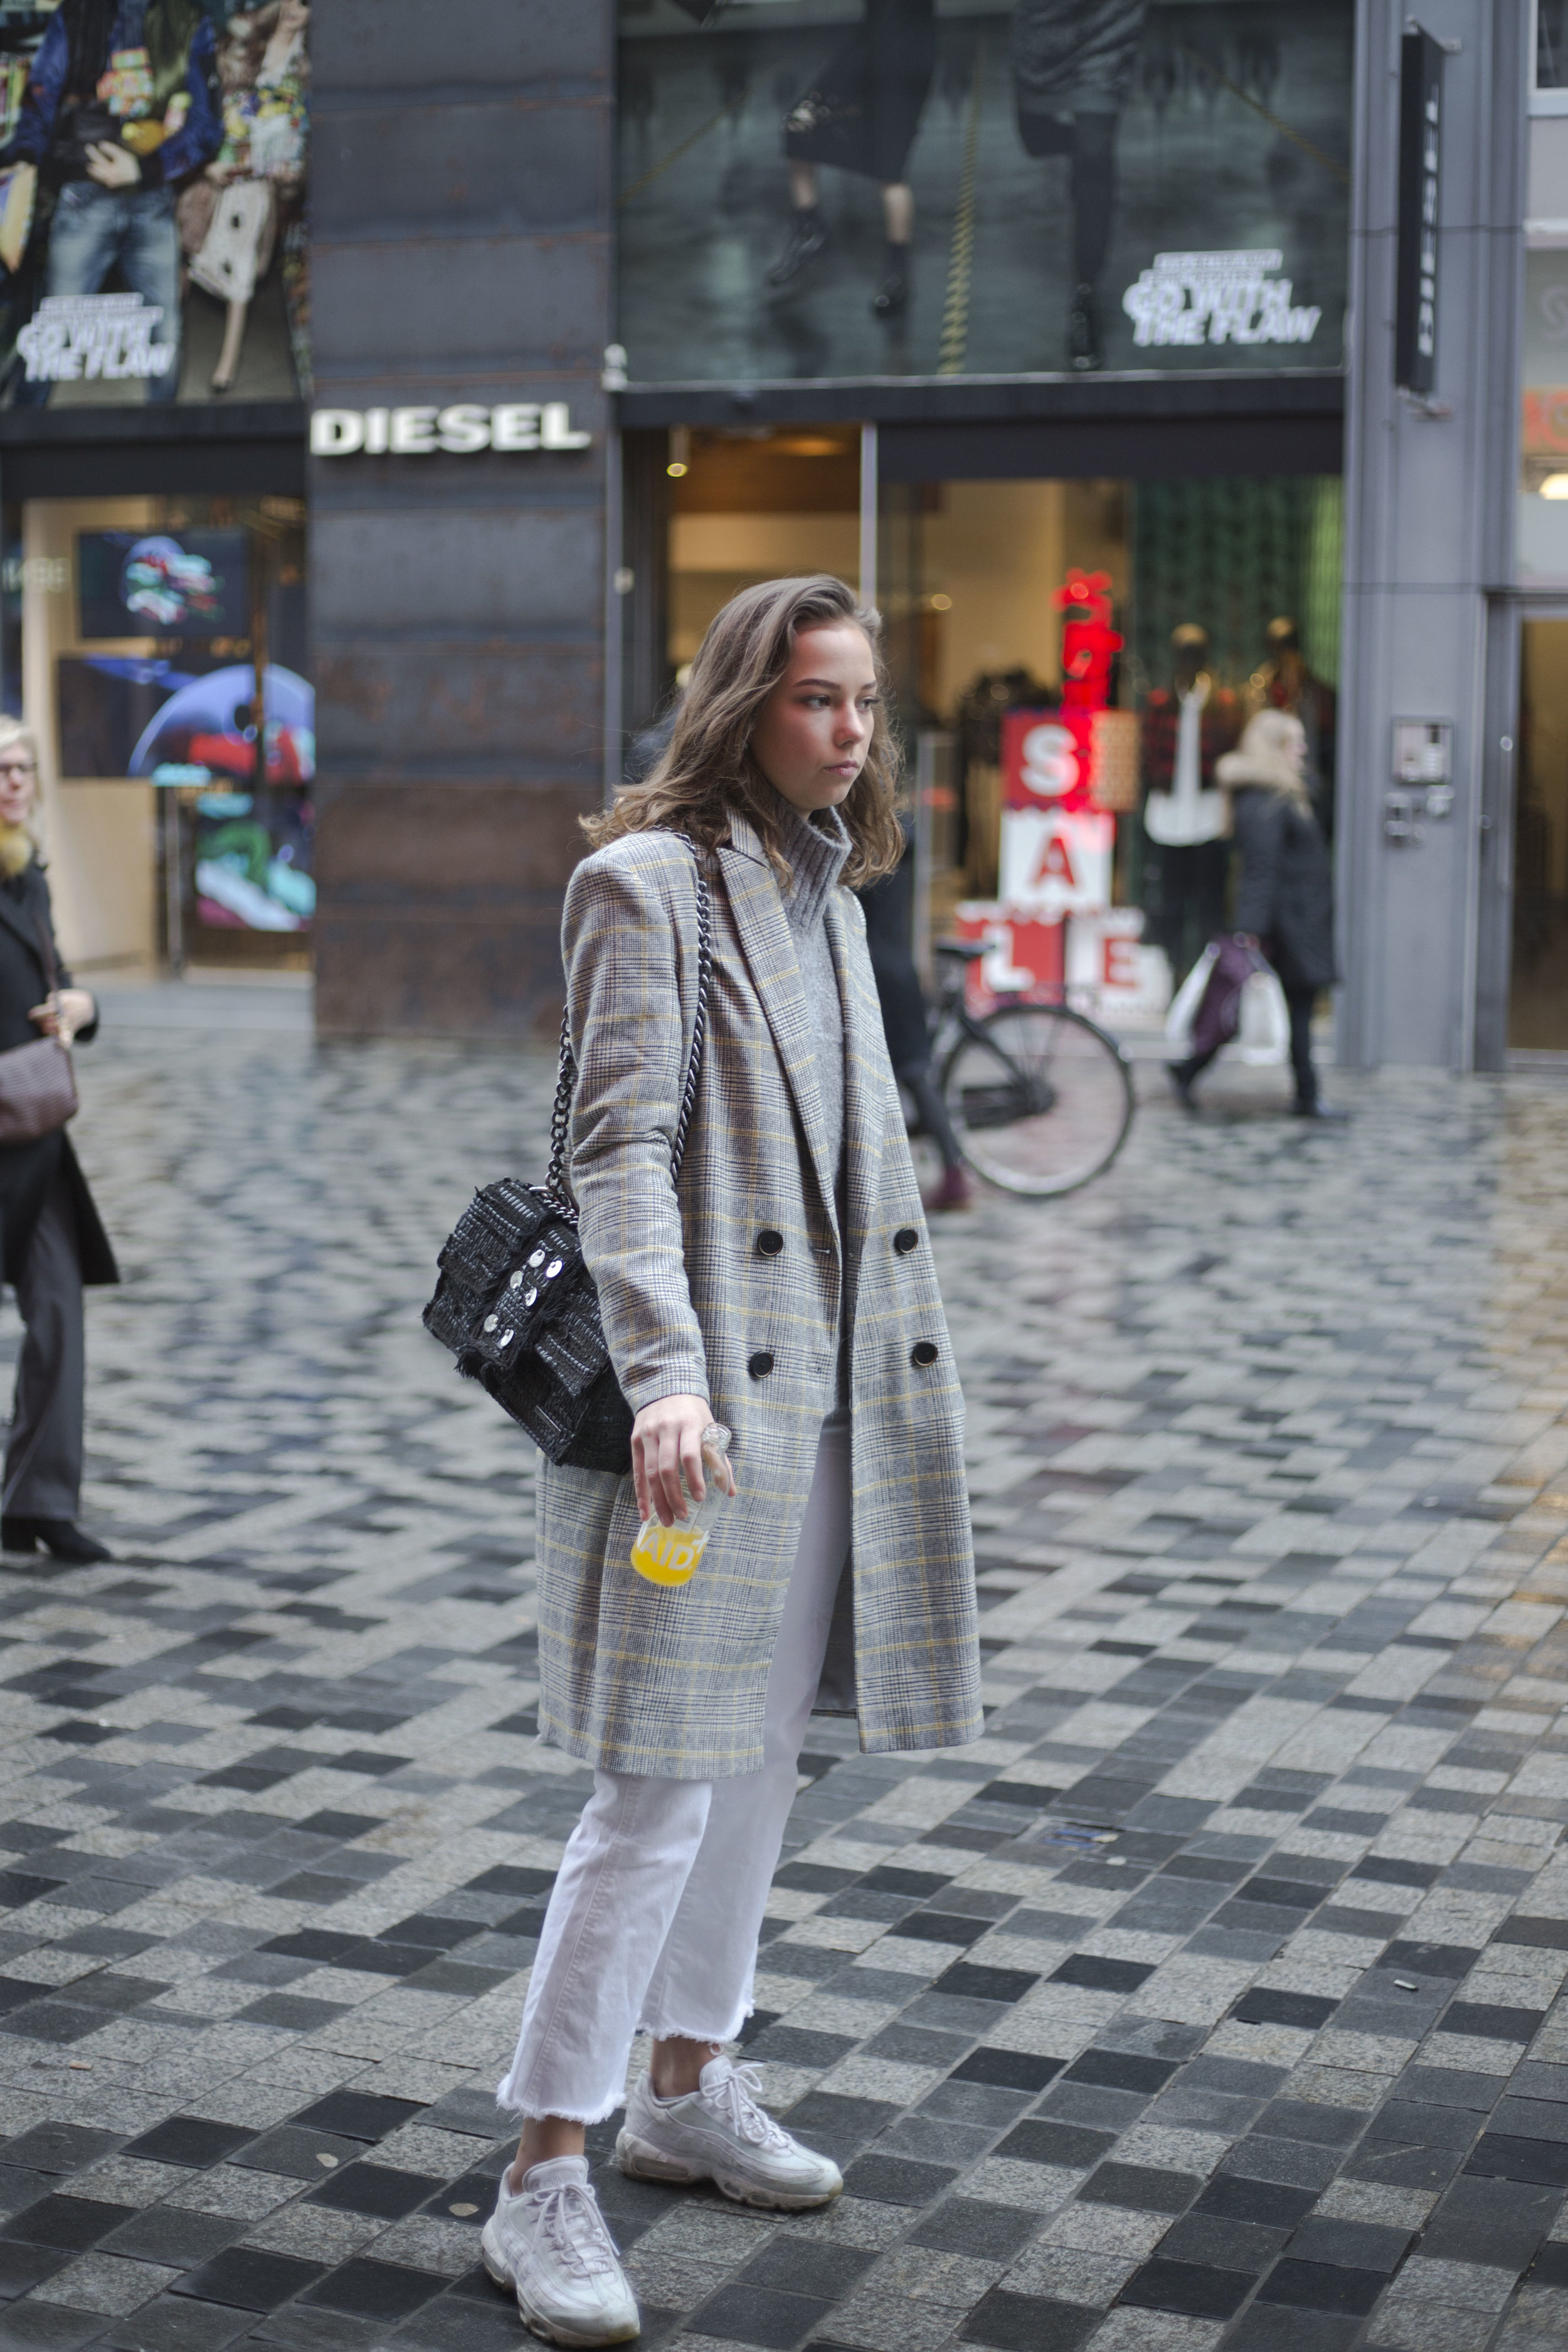 Grate style of Bodil wearing H&M sweatter, Filippa K pants and jacket from zarah